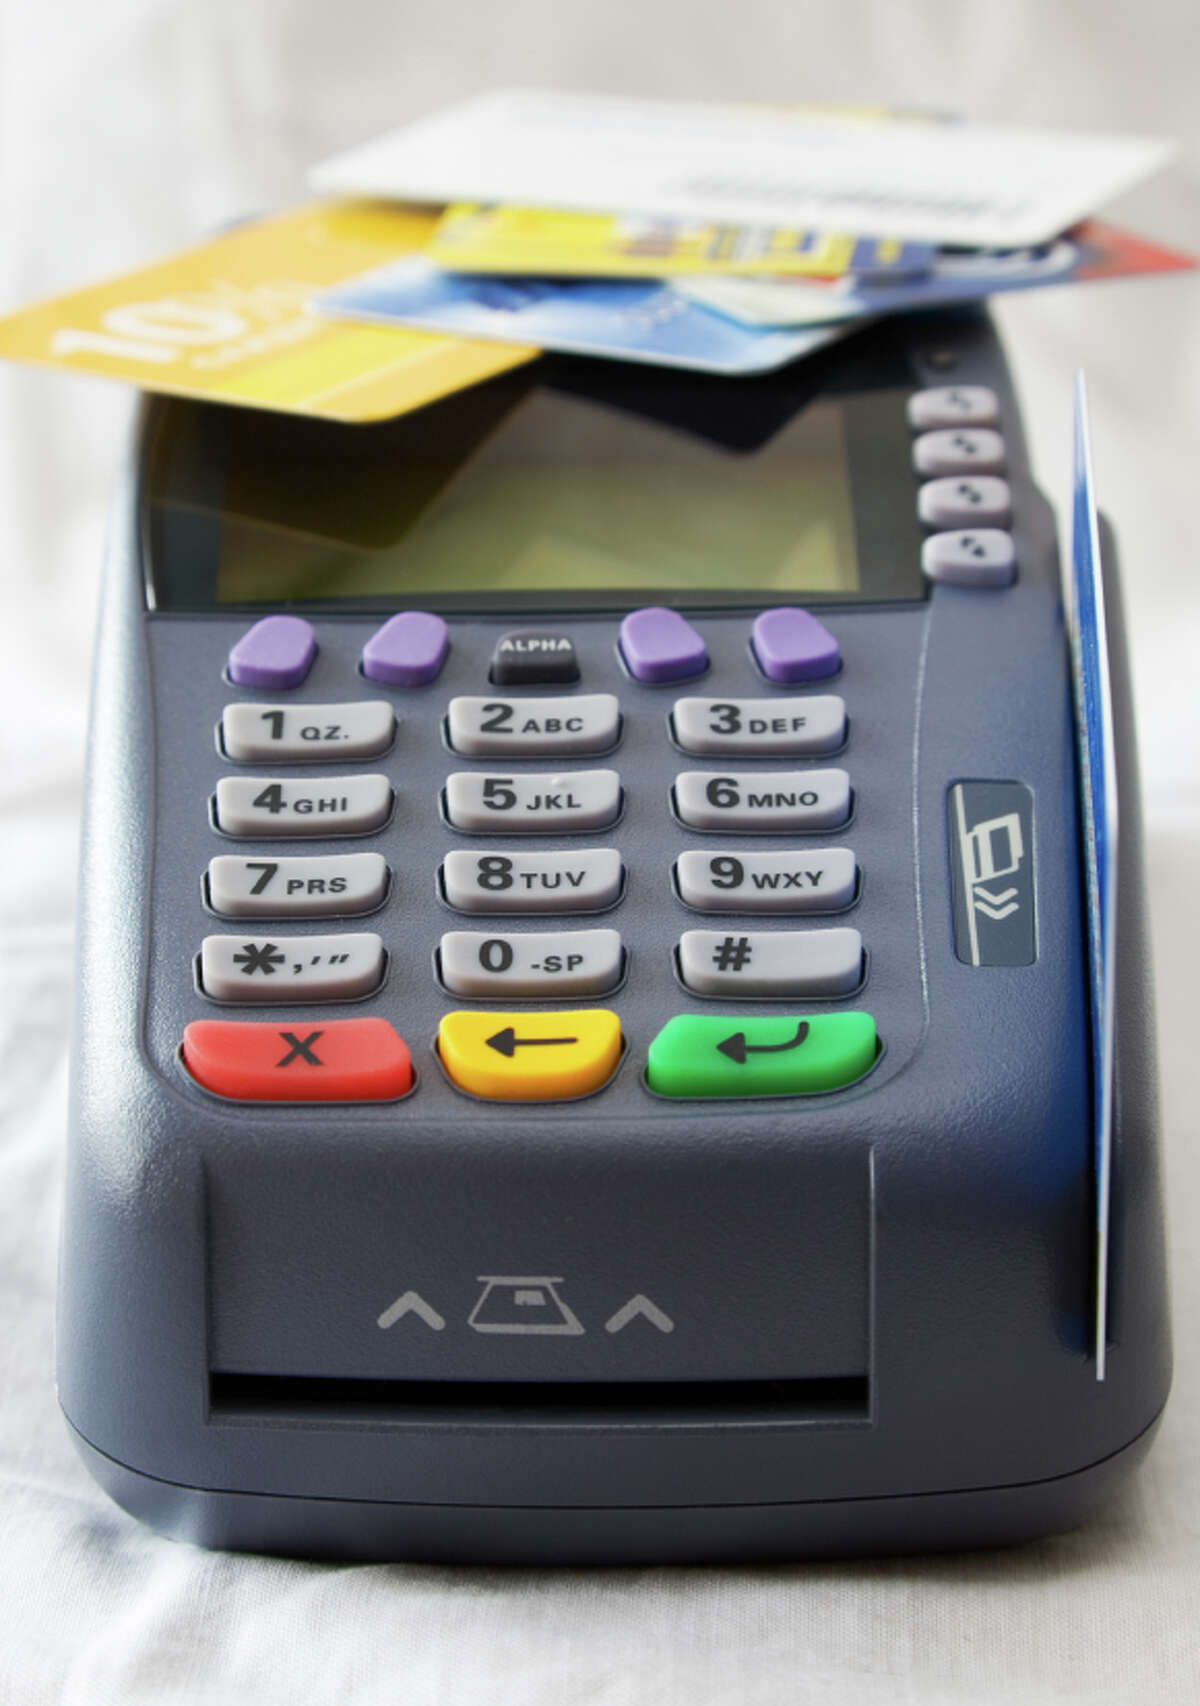 Many retailers offer credit cards you can open with no interest rate, which is great, but if you do not pay within the marked time period you could be charged some serious fees. It's better to avoid these as much as possible.